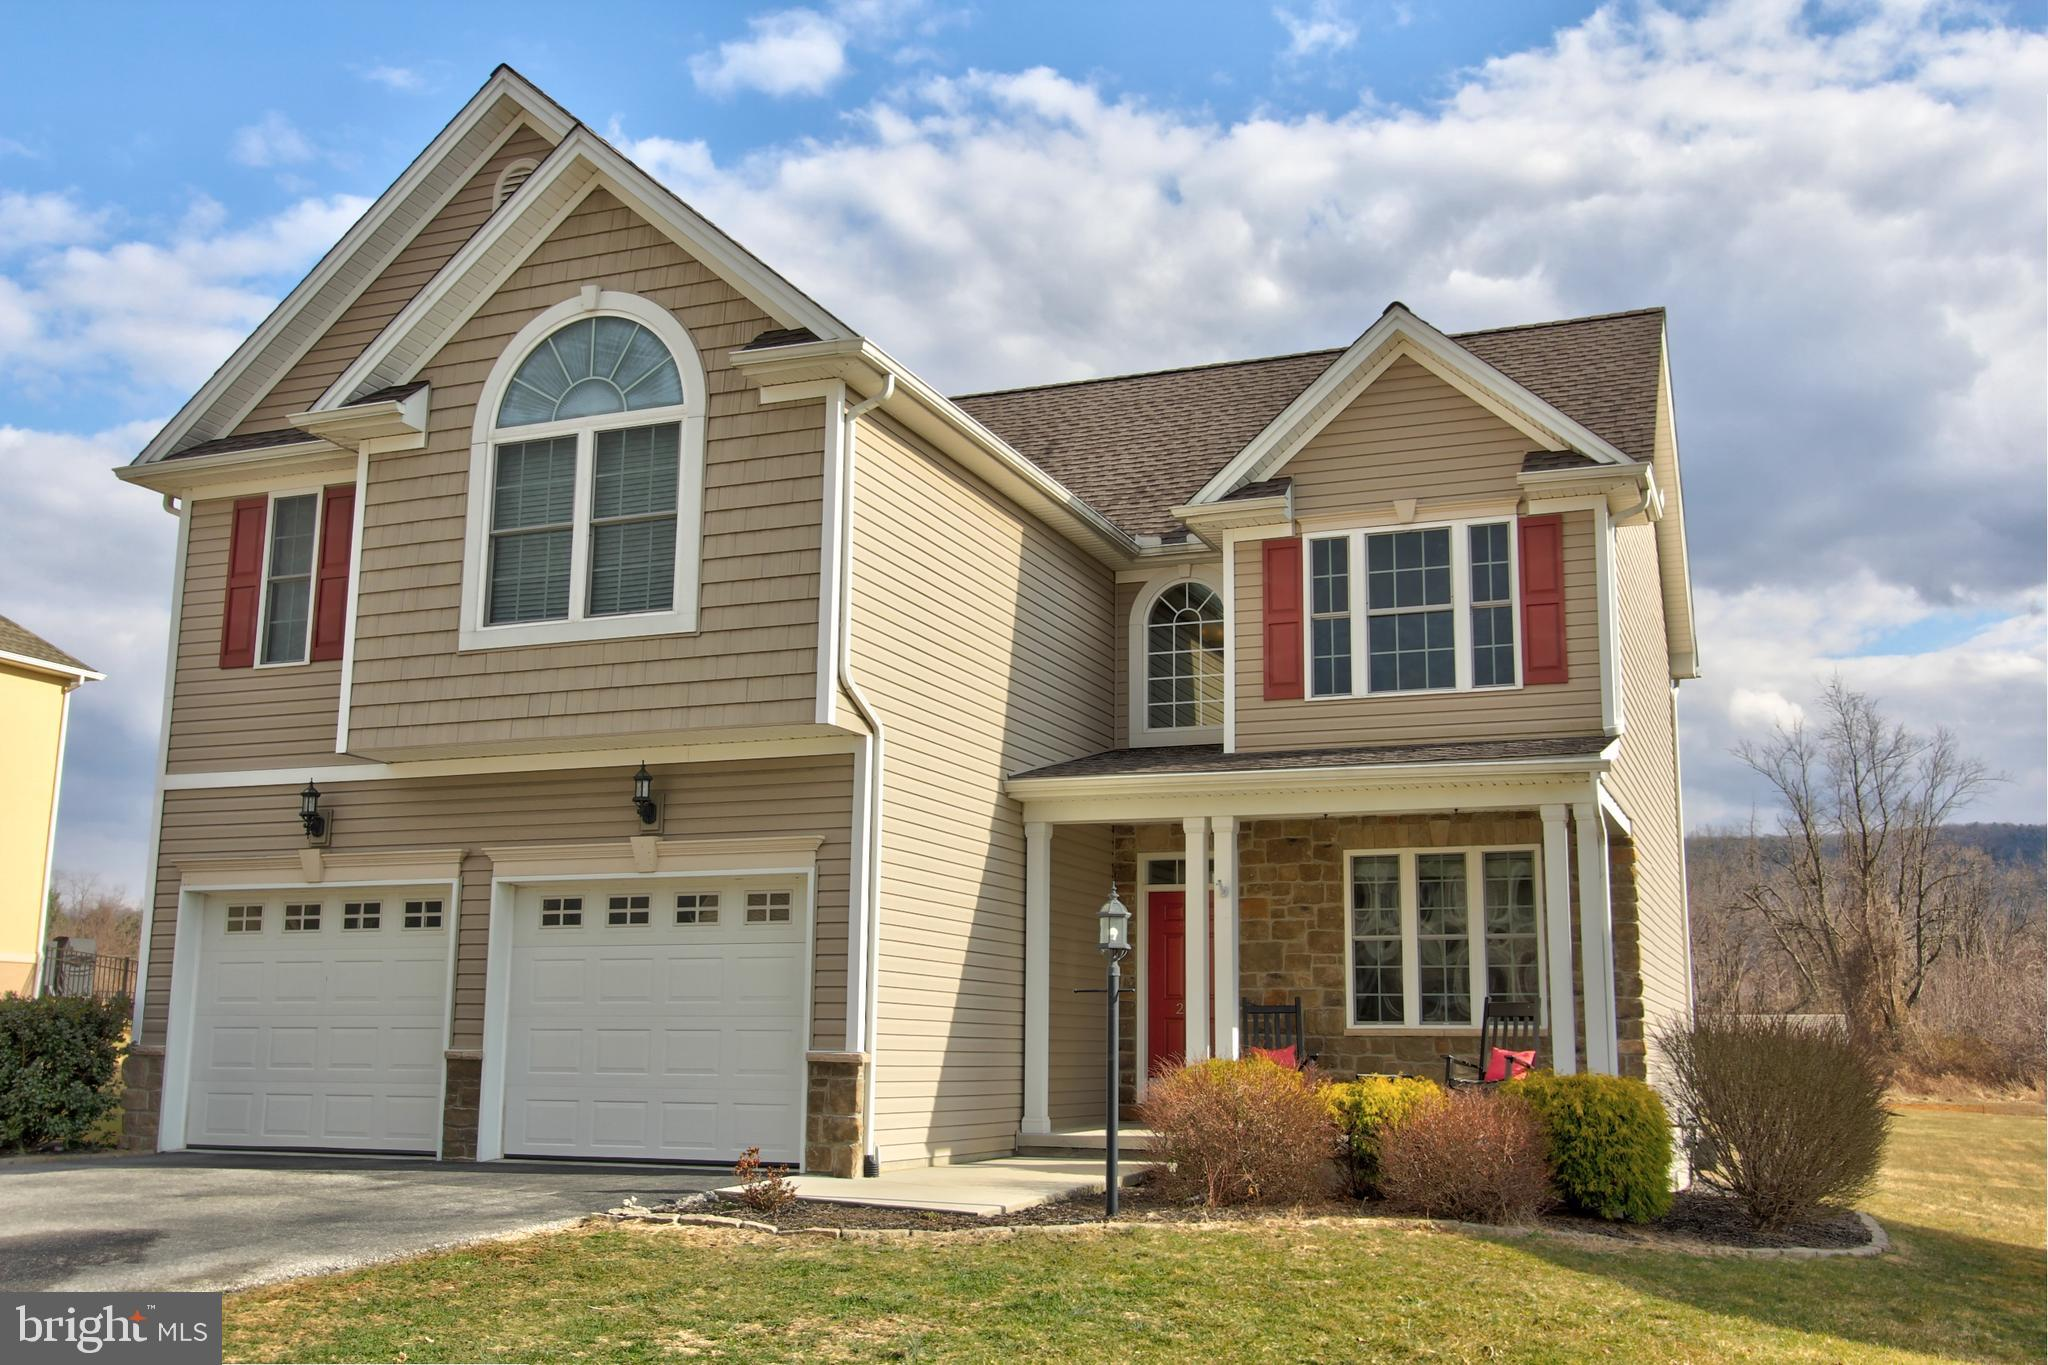 216 WESTGATE DRIVE, MOUNT HOLLY SPRINGS, PA 17065